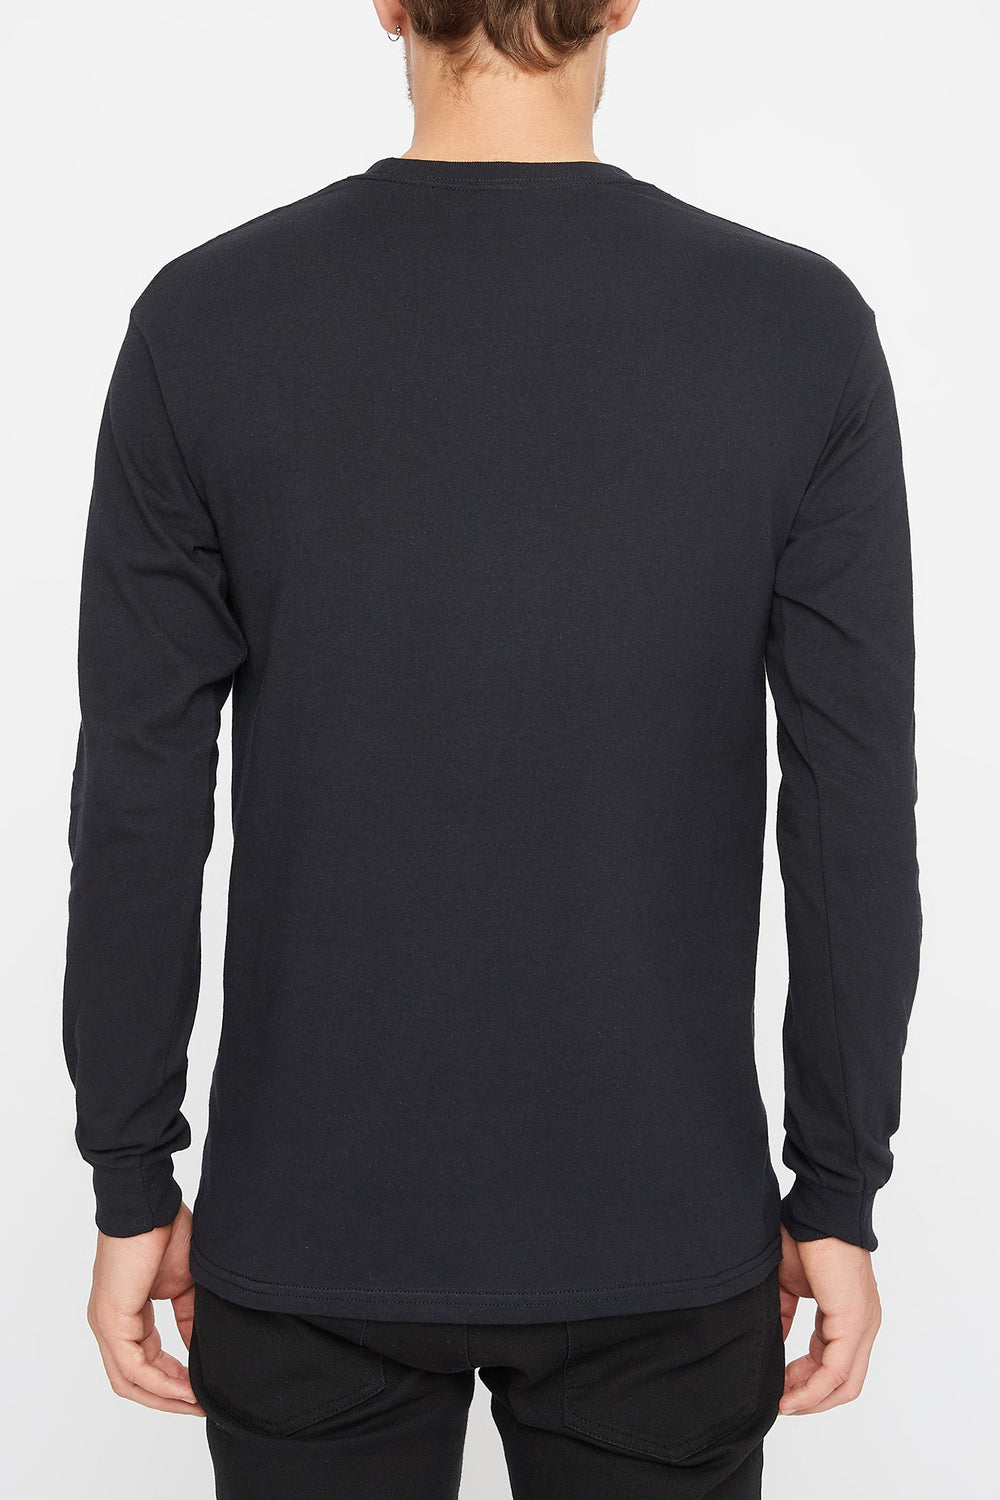 Thrasher Doubles Long Sleeve Shirt Black